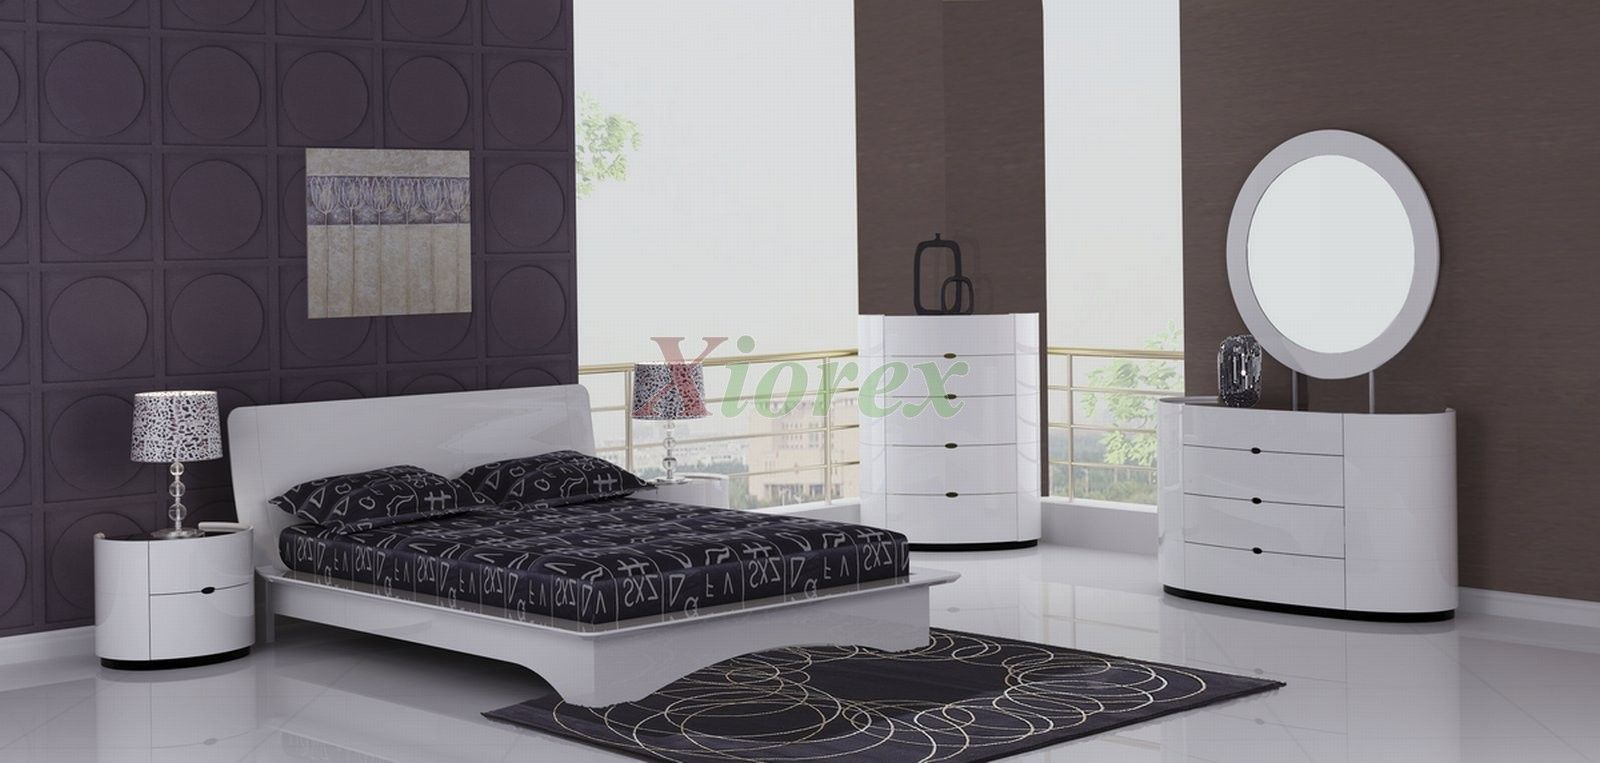 eri all white modern bedroom furniture sets canada xiorex eri all white bedroom collections are - Modern Bedroom Furniture Sets